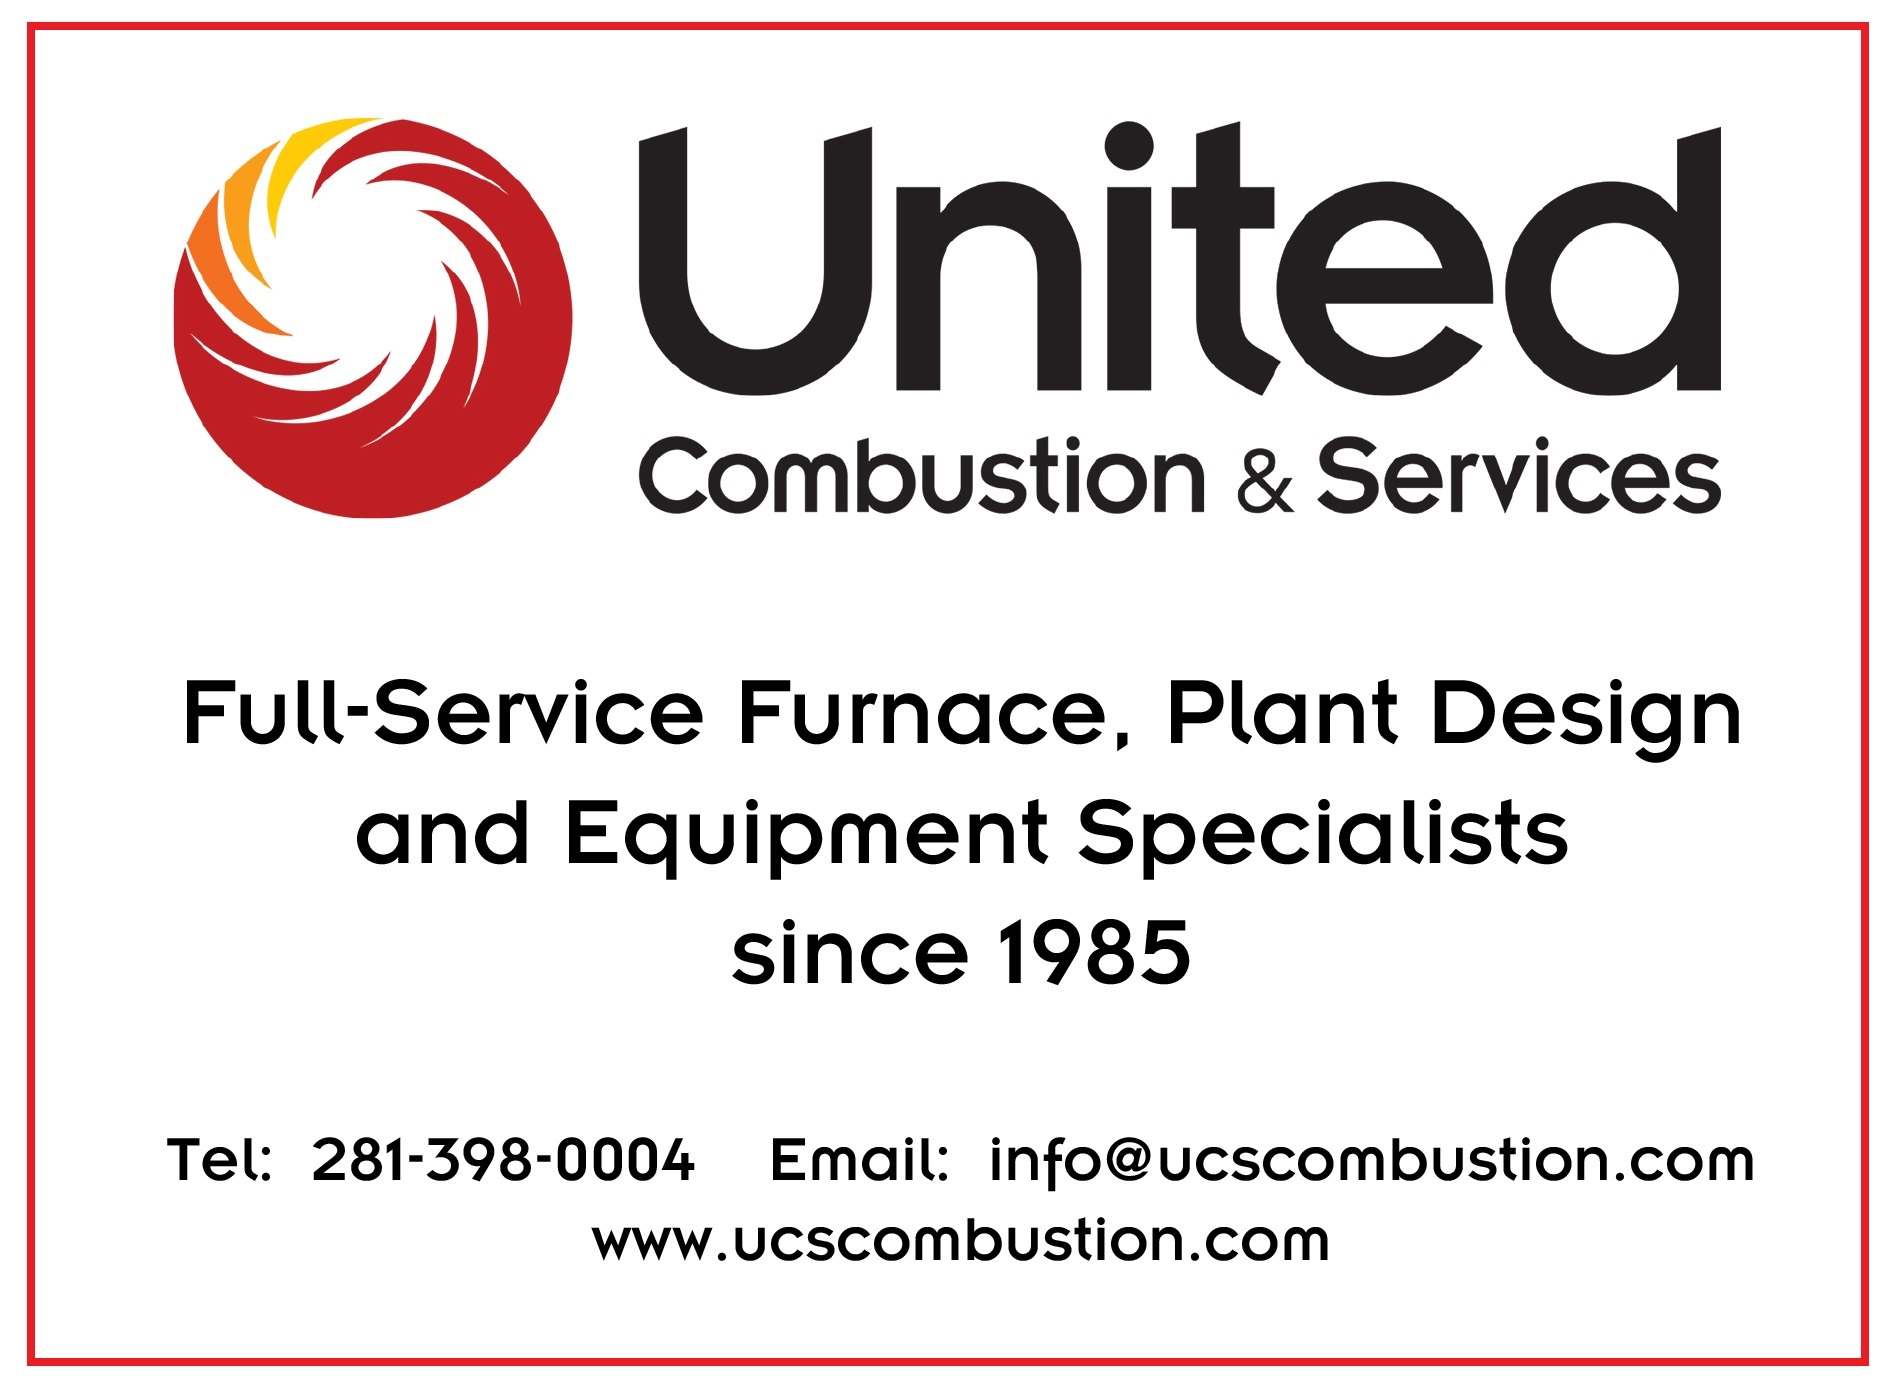 United Combustion & Services